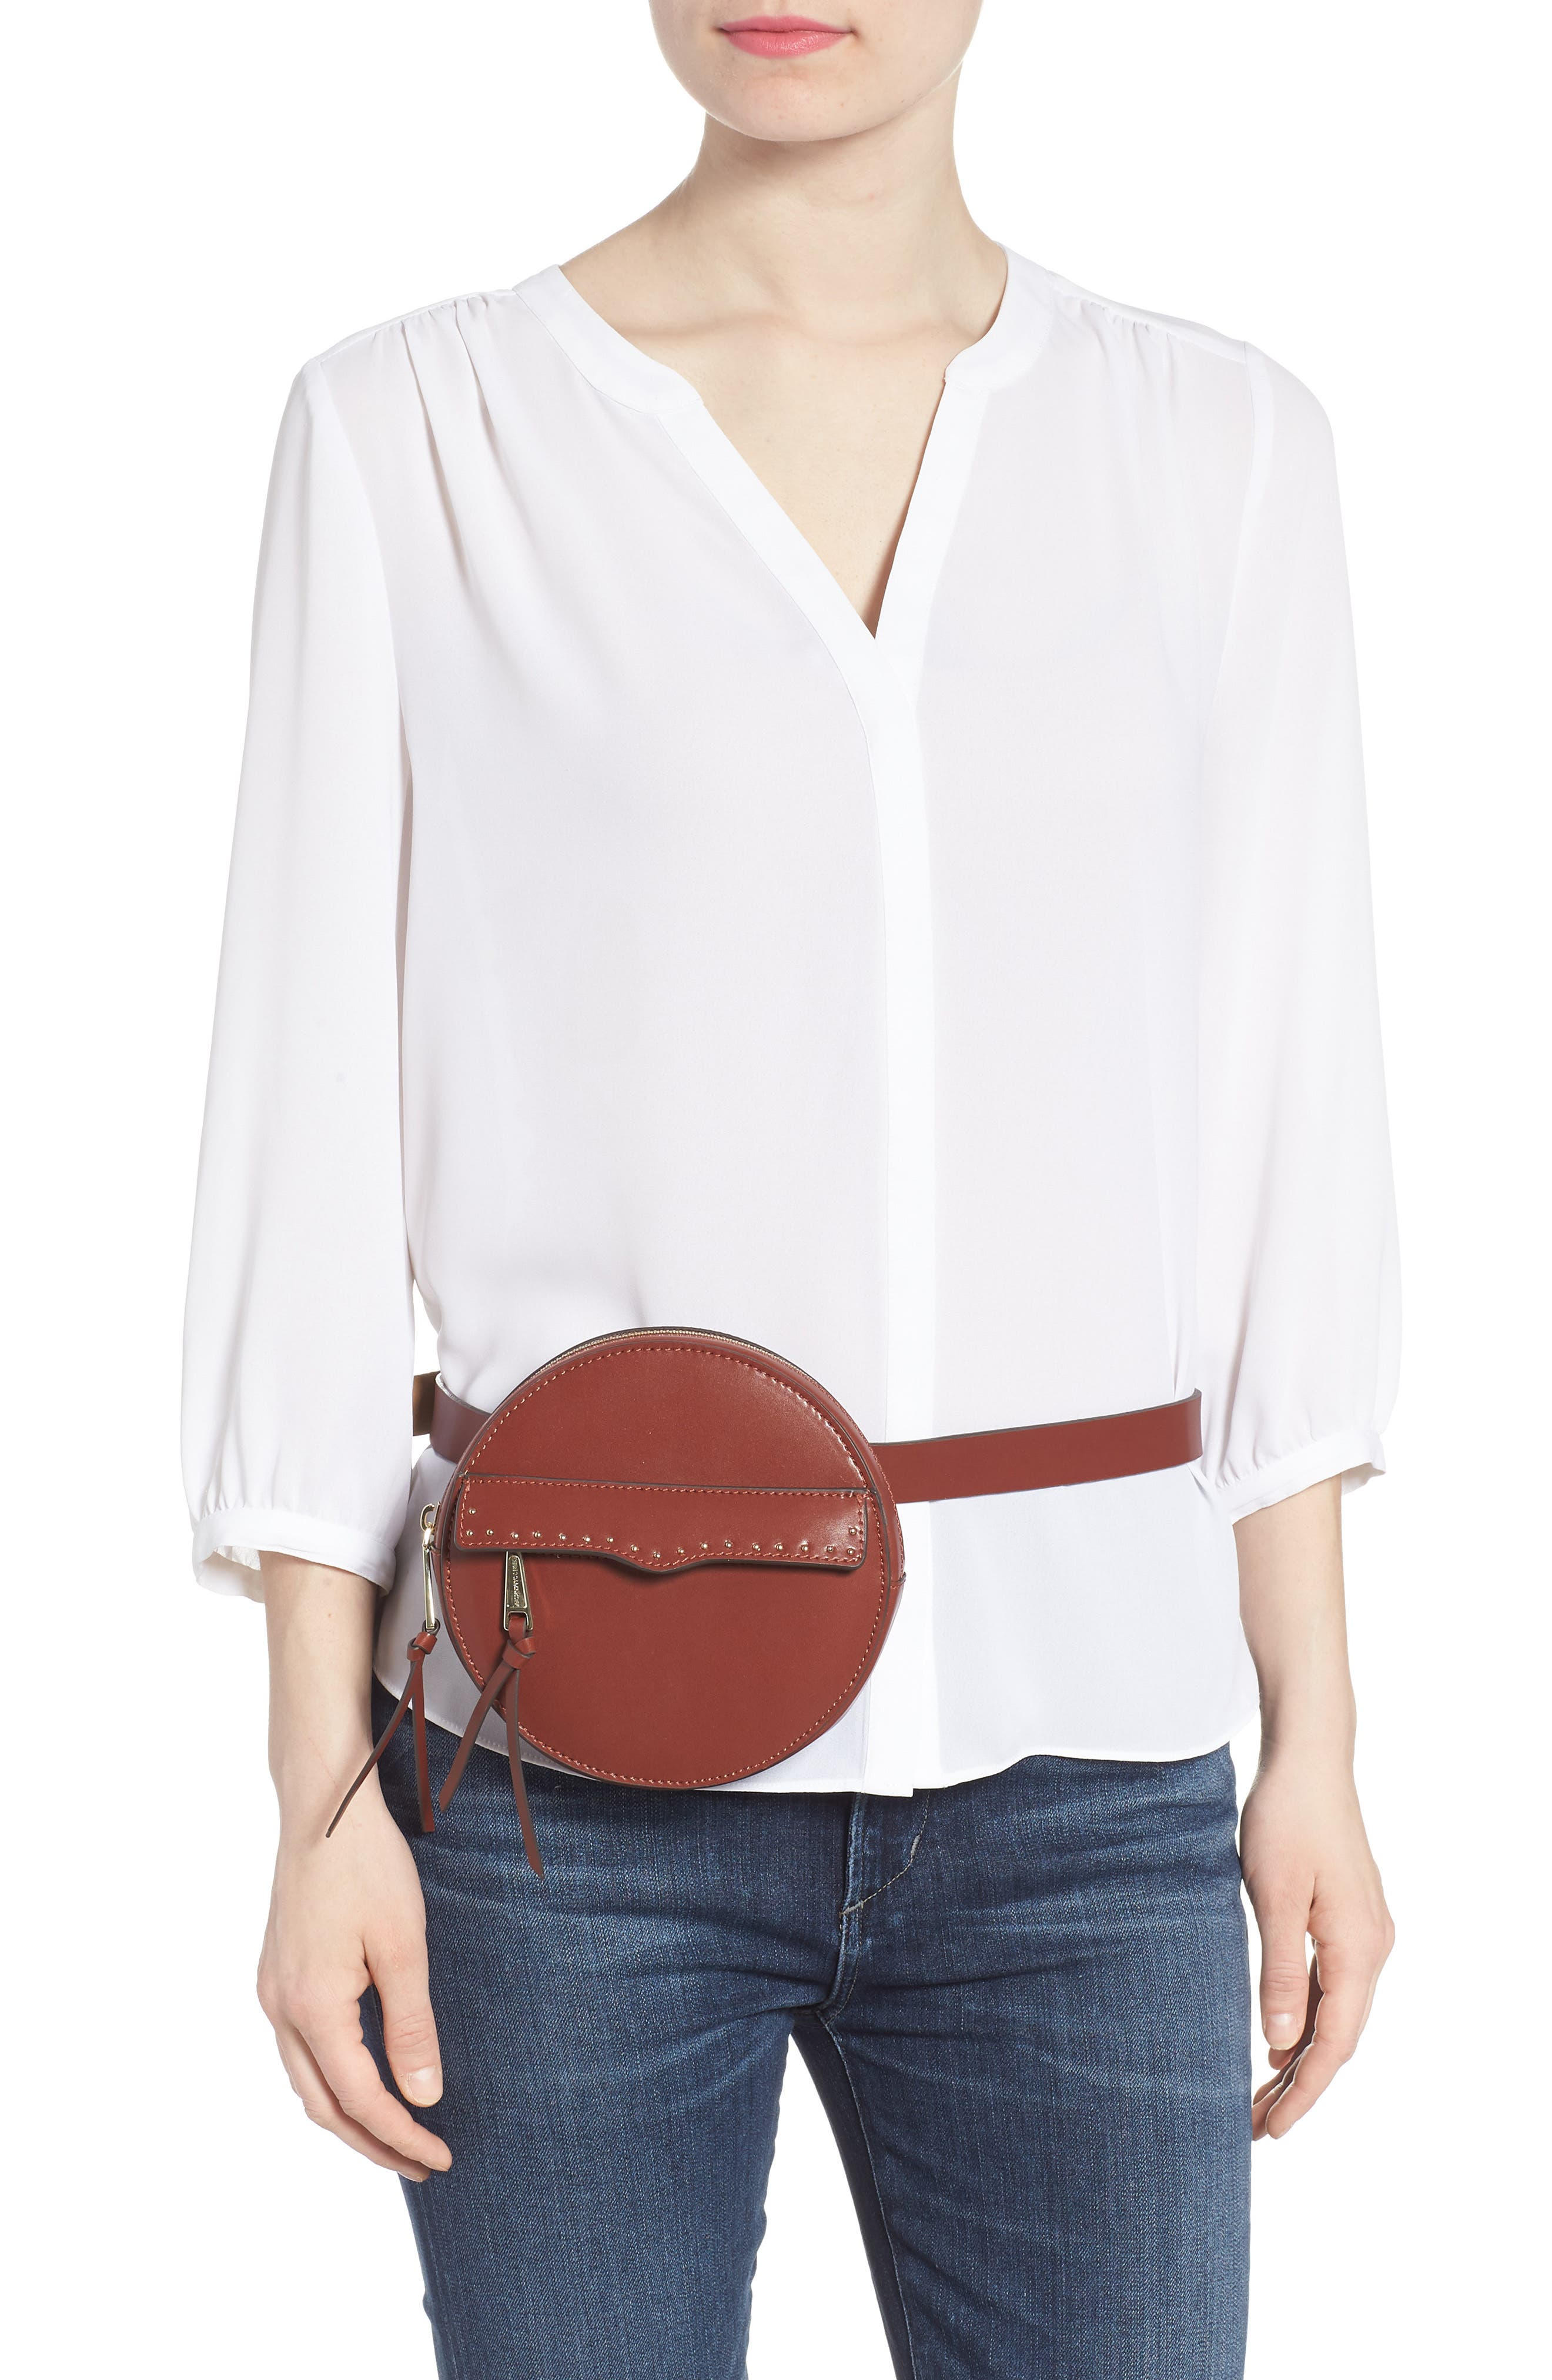 Lucy Leather Belt Bag,                             Alternate thumbnail 2, color,                             LUGGAGE